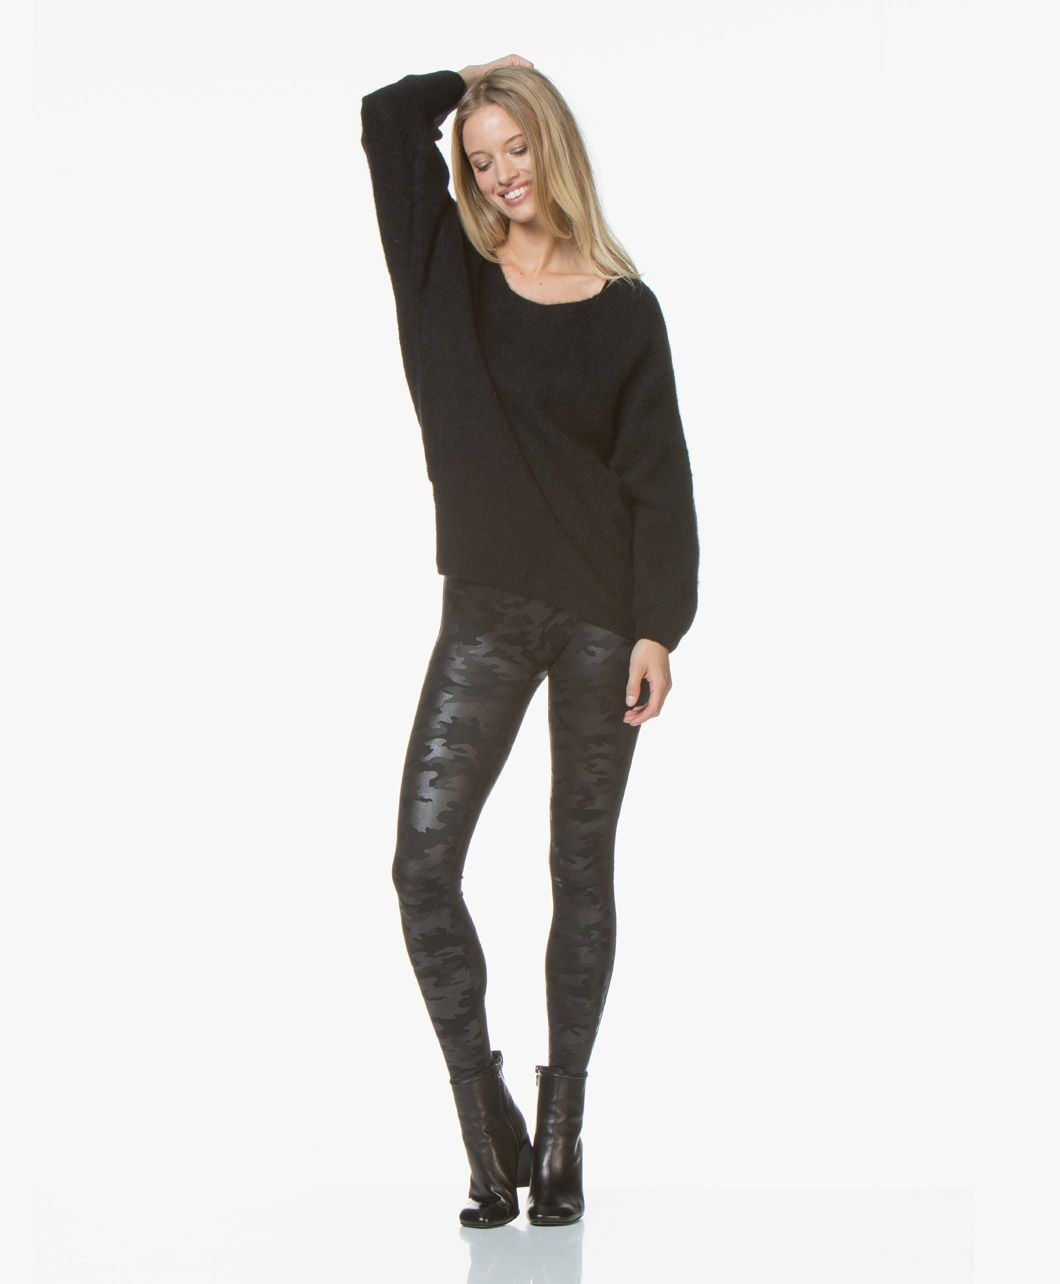 a513774e7 Image result for spanx faux leather camo leggings